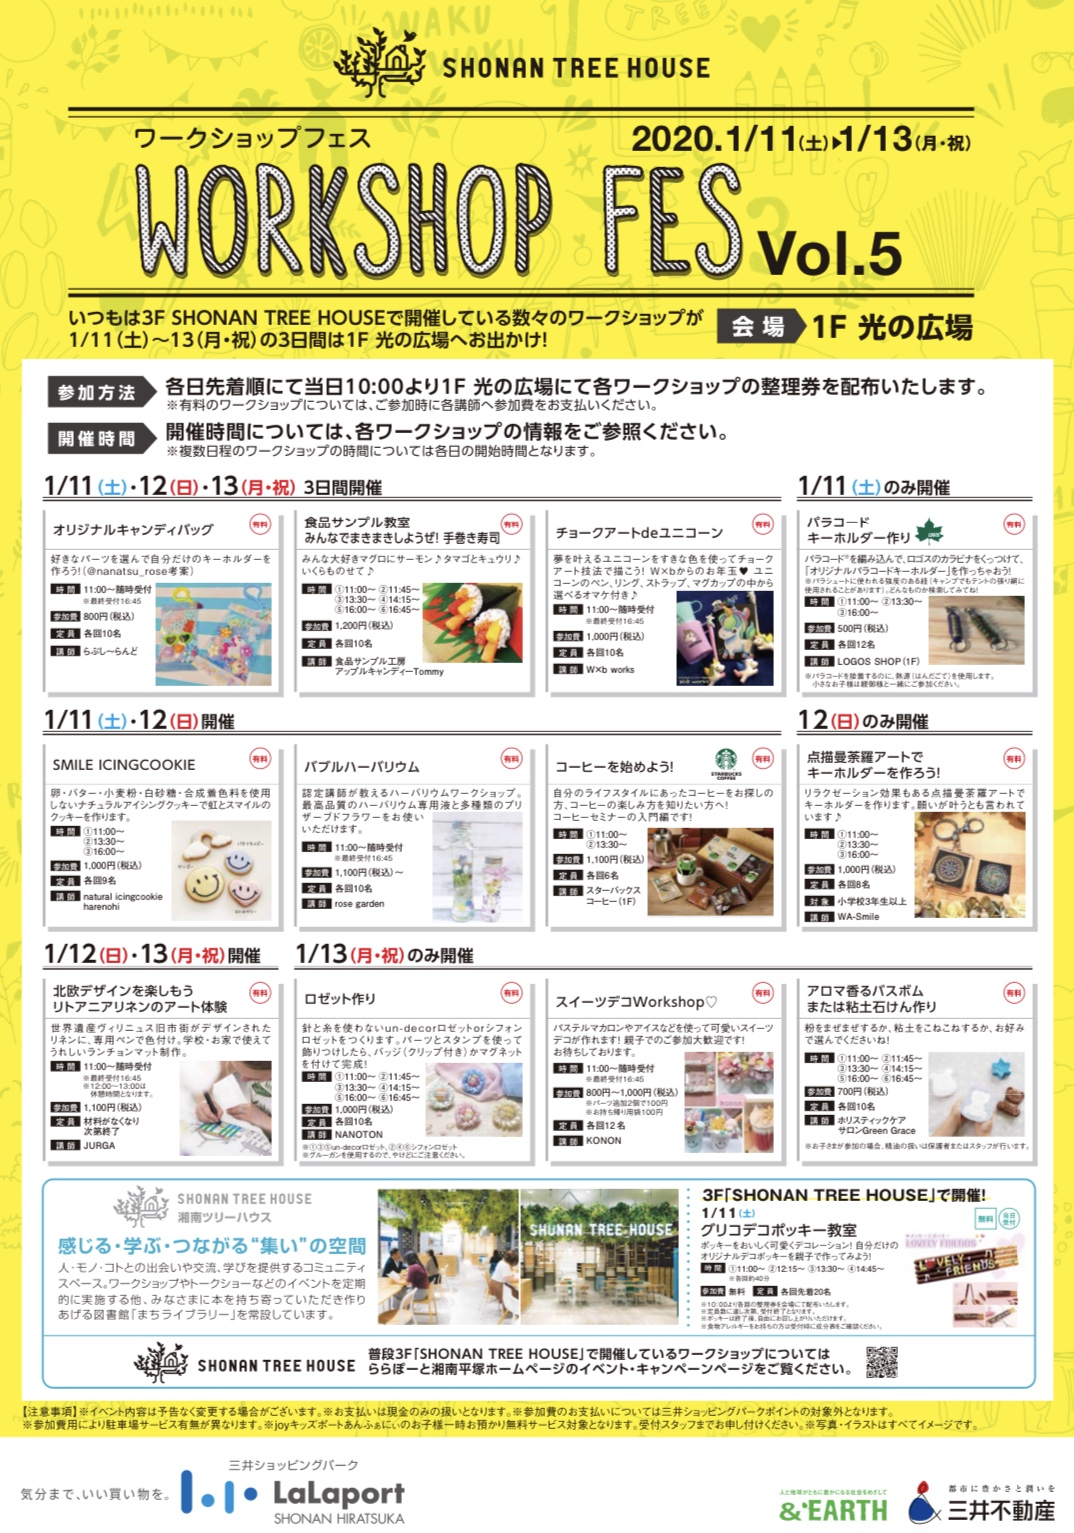 SHONAN TREE HOUSE WORK SHOP FES VOL.5